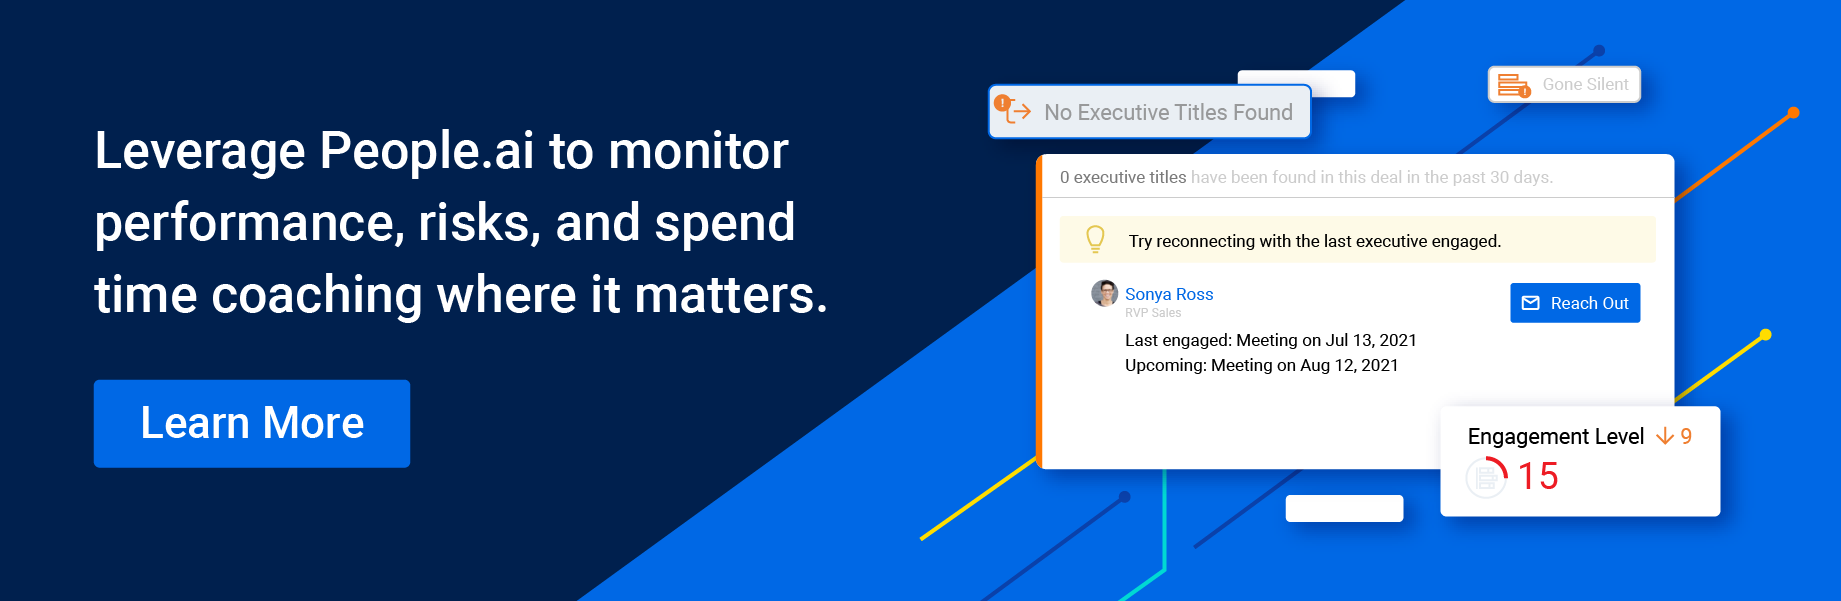 Leverage People.ai to monitor perfomance, risks, and spend time coaching when it matters